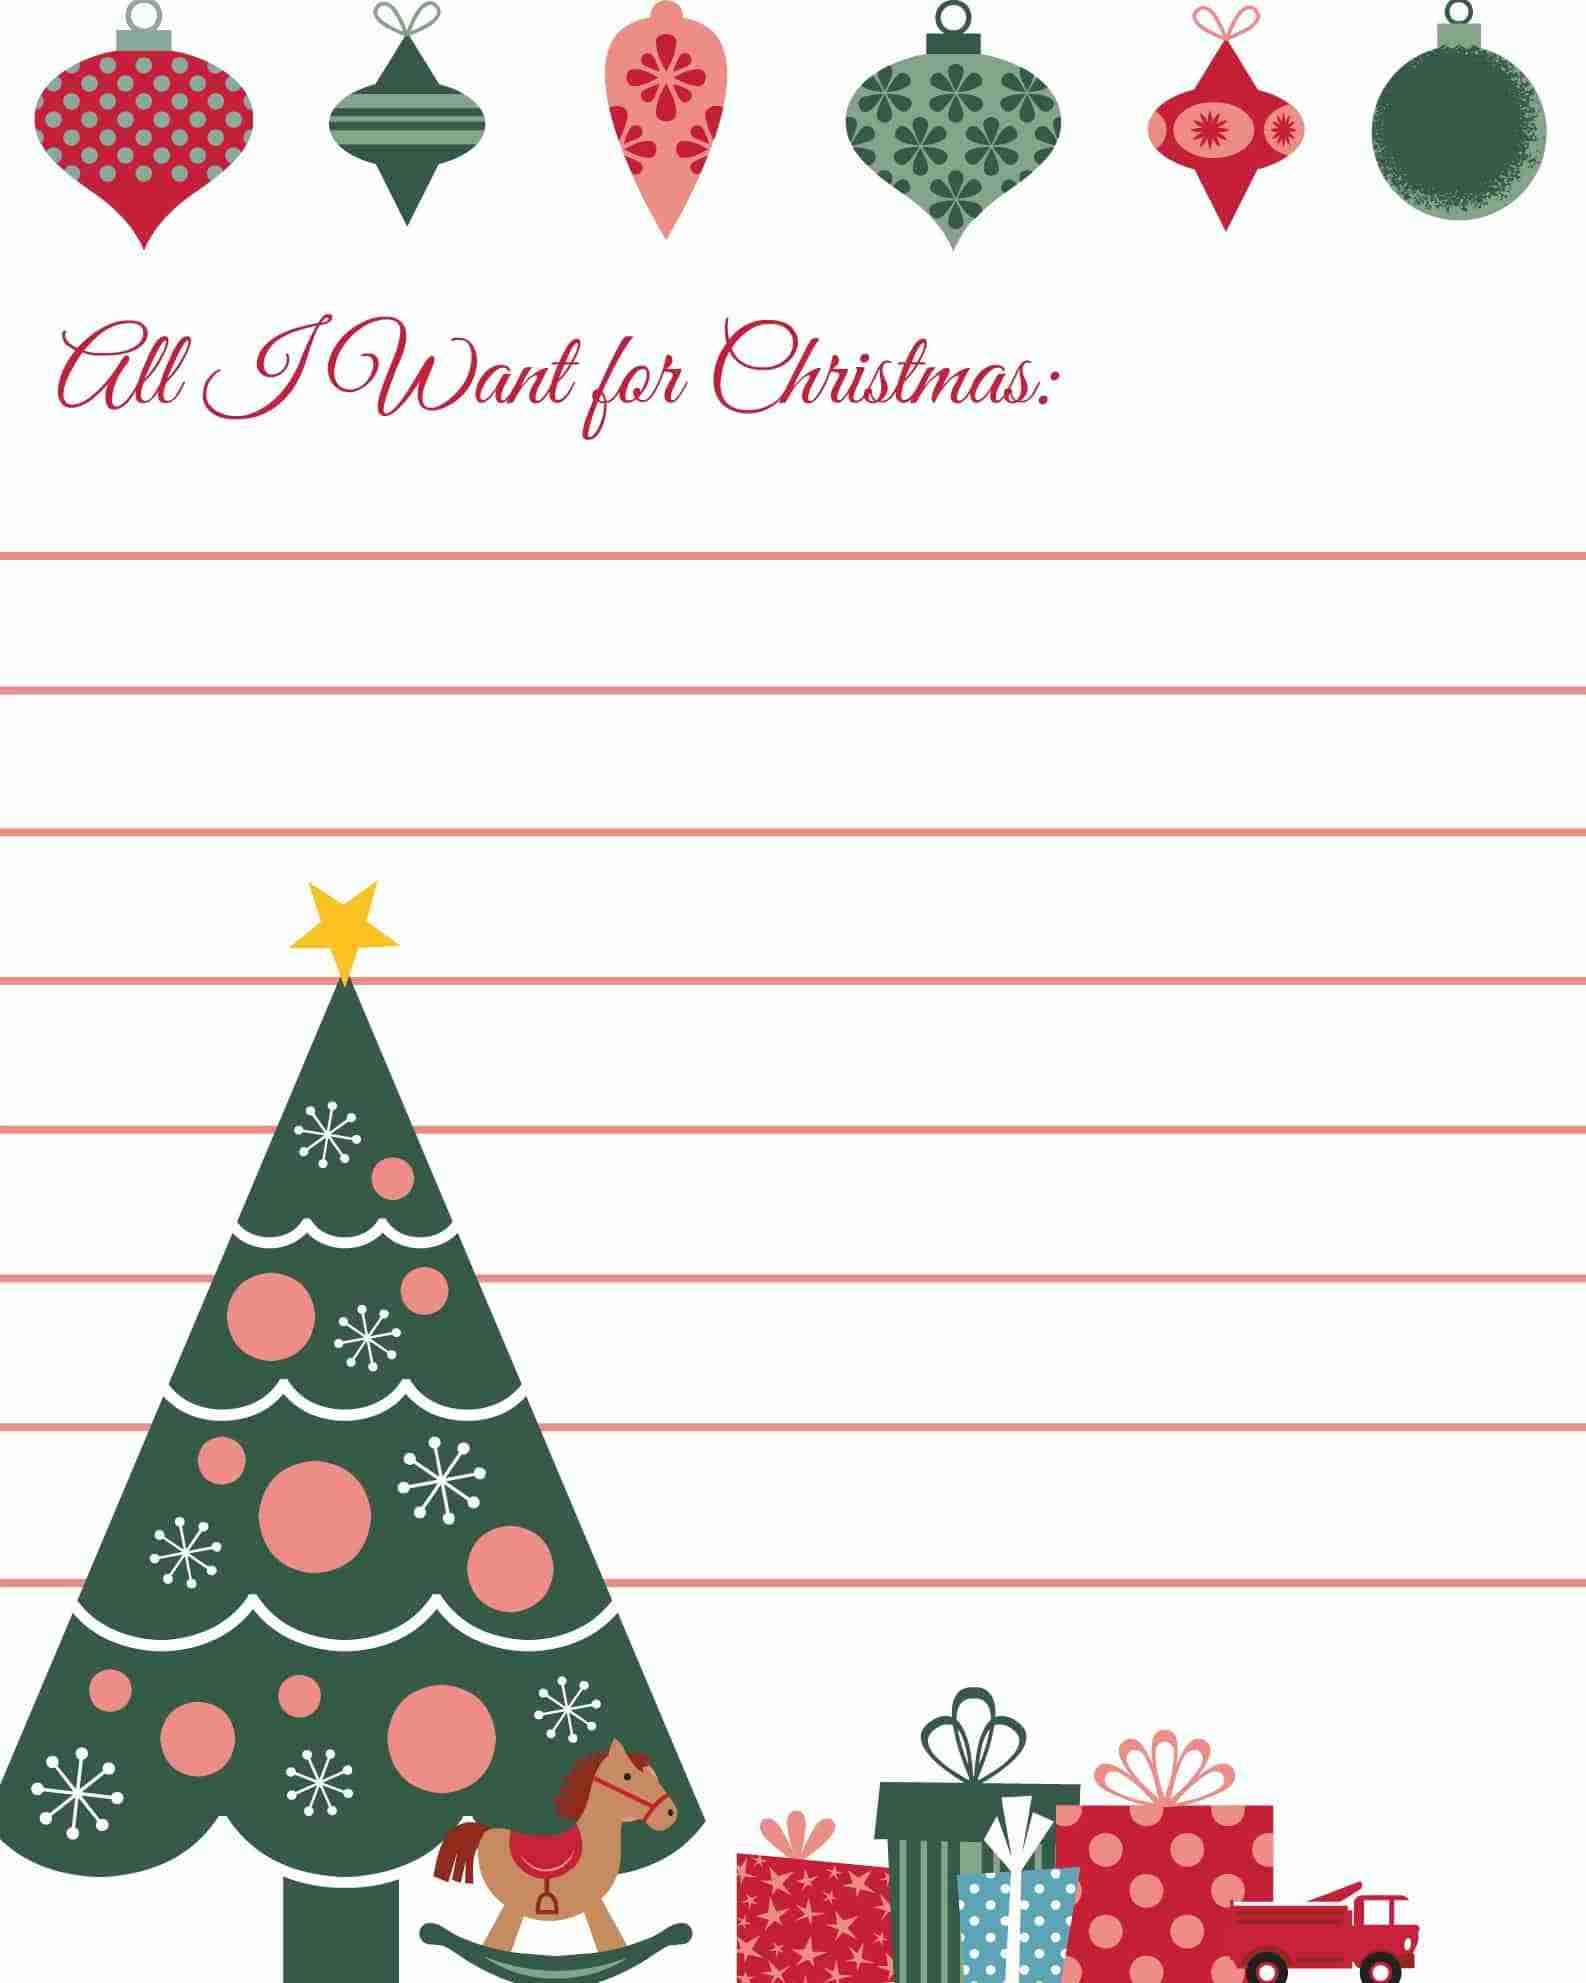 All I Want For Christmas Printable Wish List | Daily Dish Magazine |  Recipes | Travel | Crafts  Free Christmas Wish List